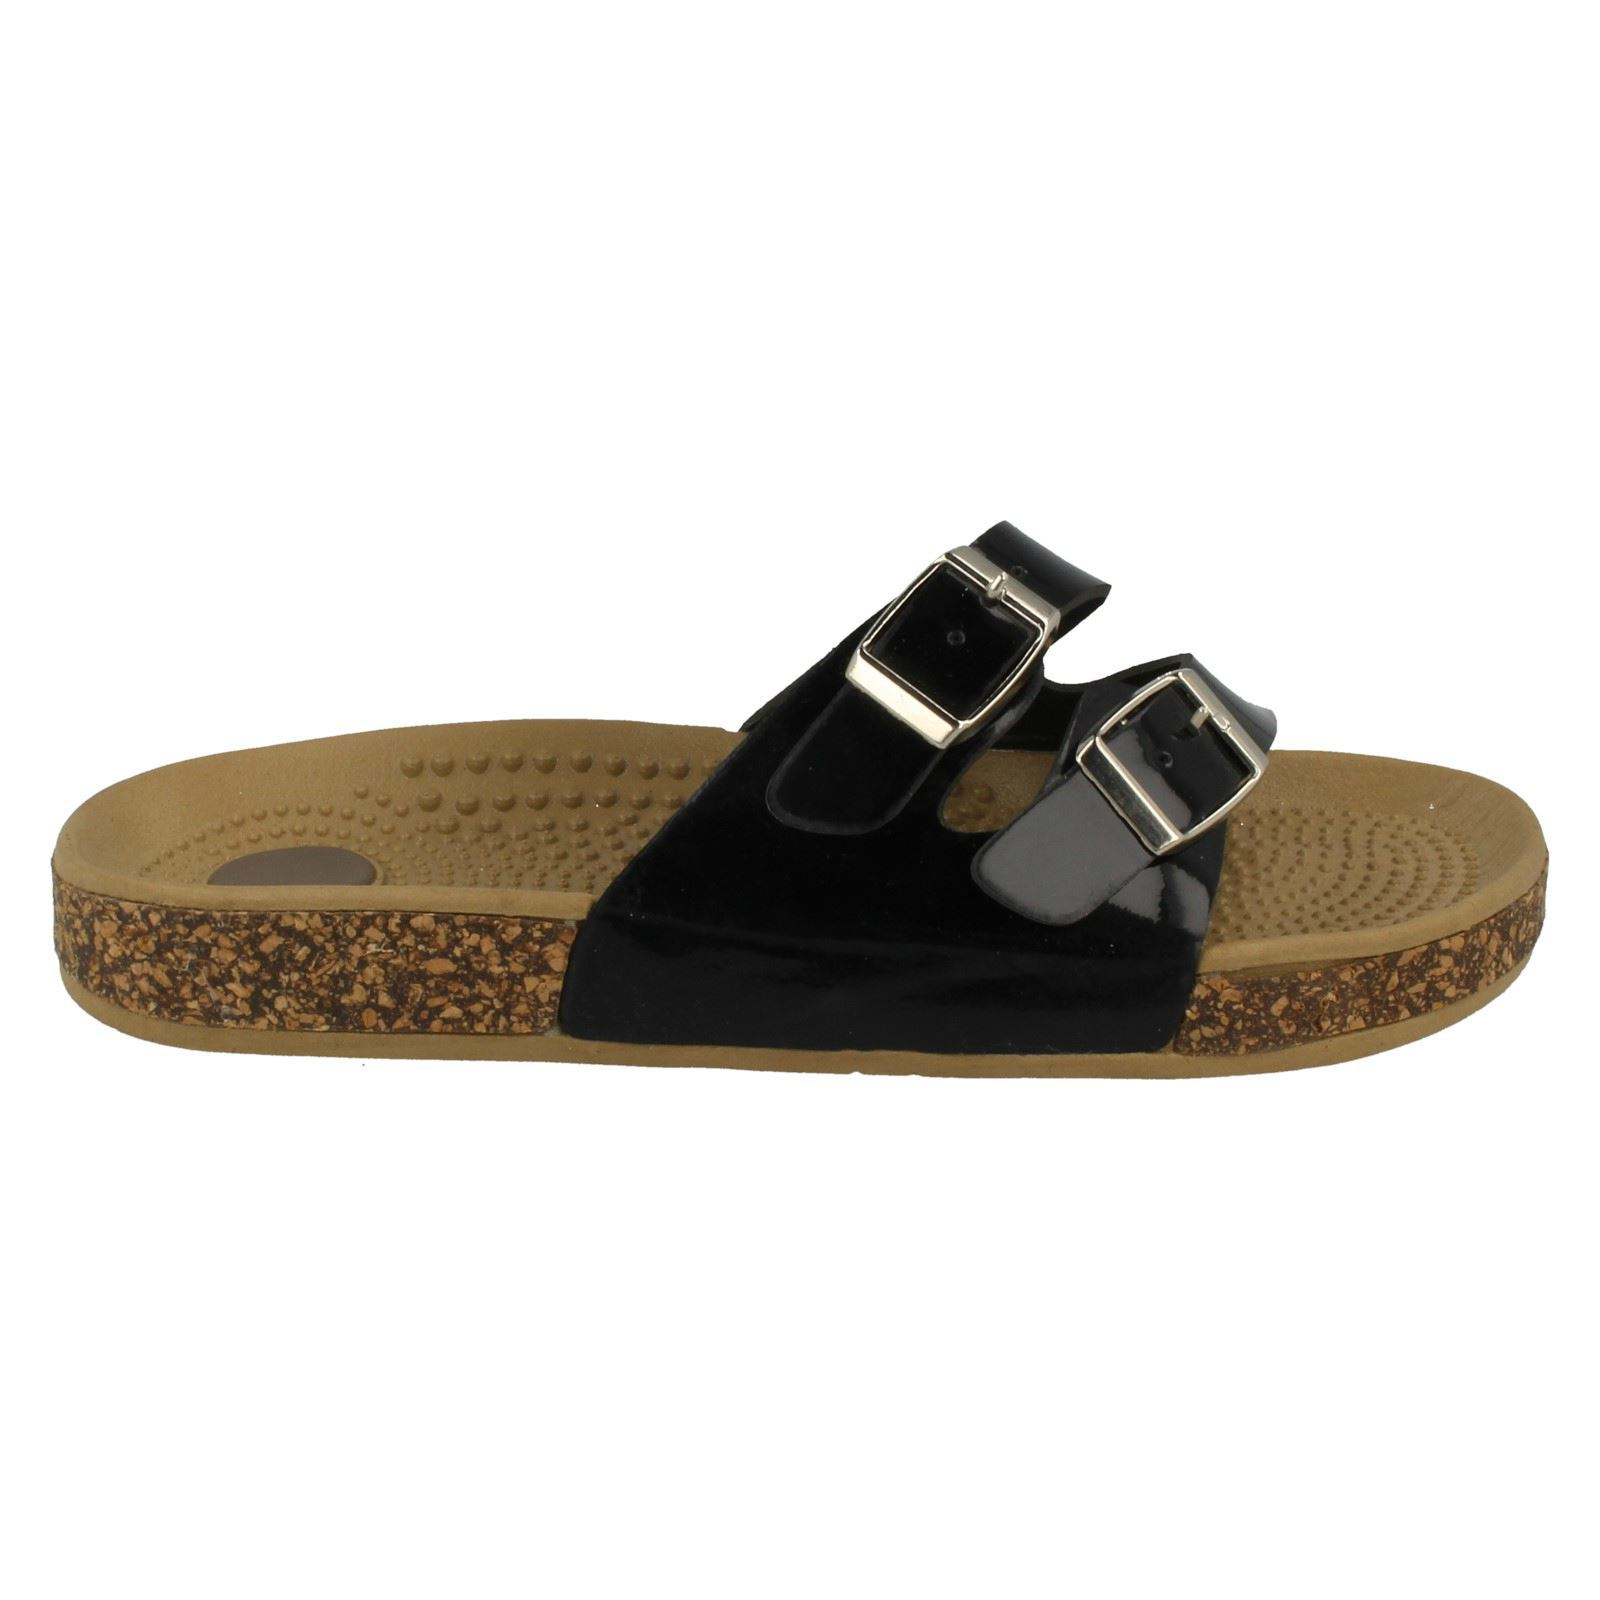 Where To Buy Calceo Shoes